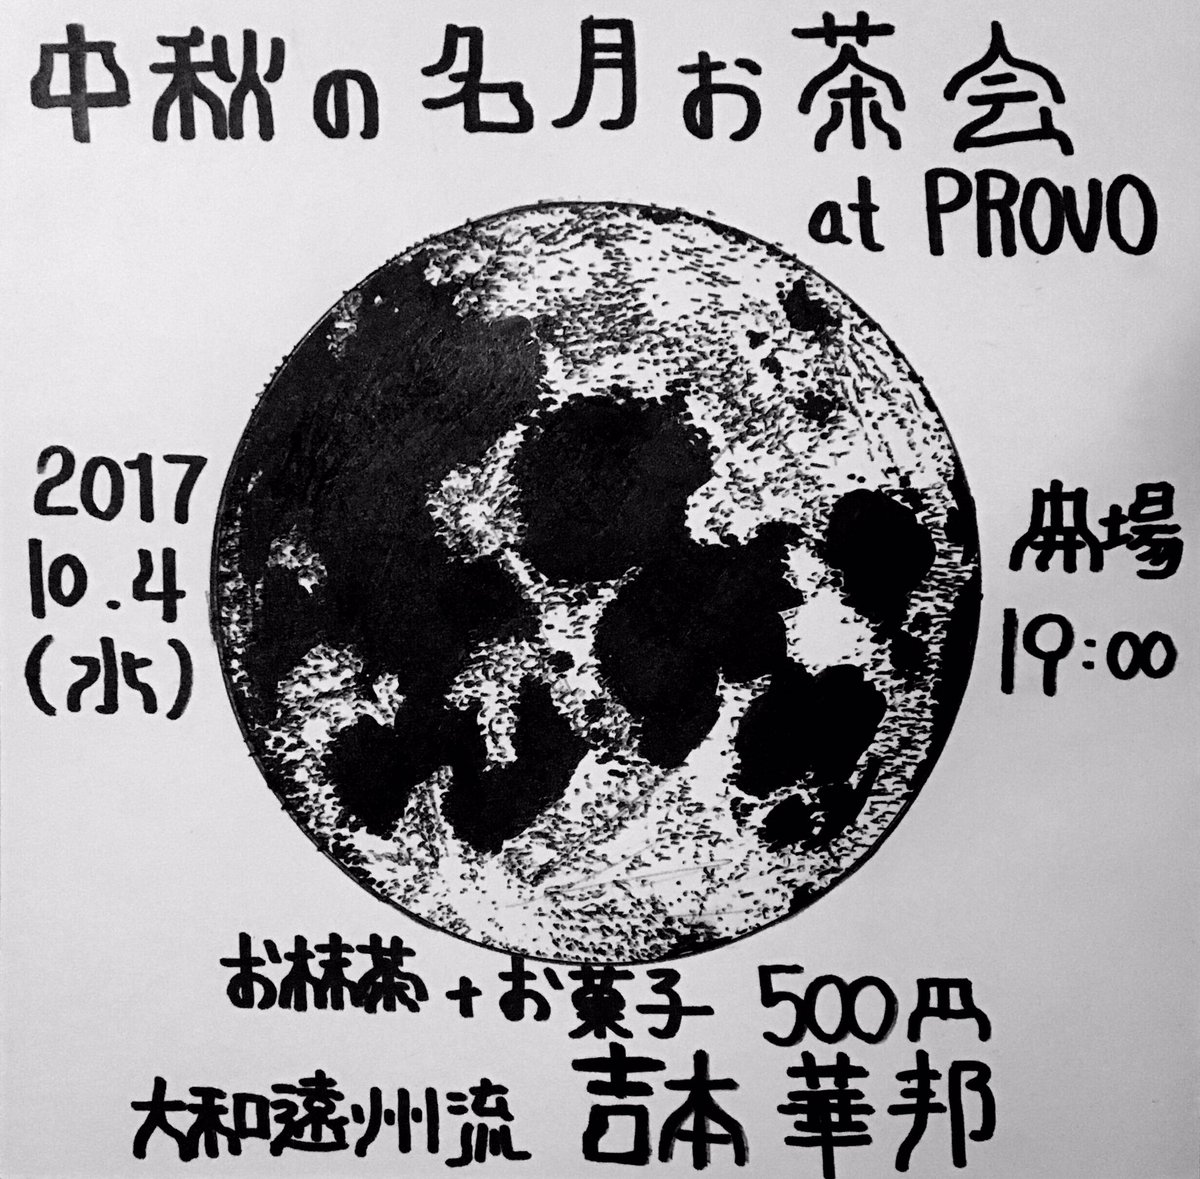 """PROVO on Twitter: """"前回好評だ..."""